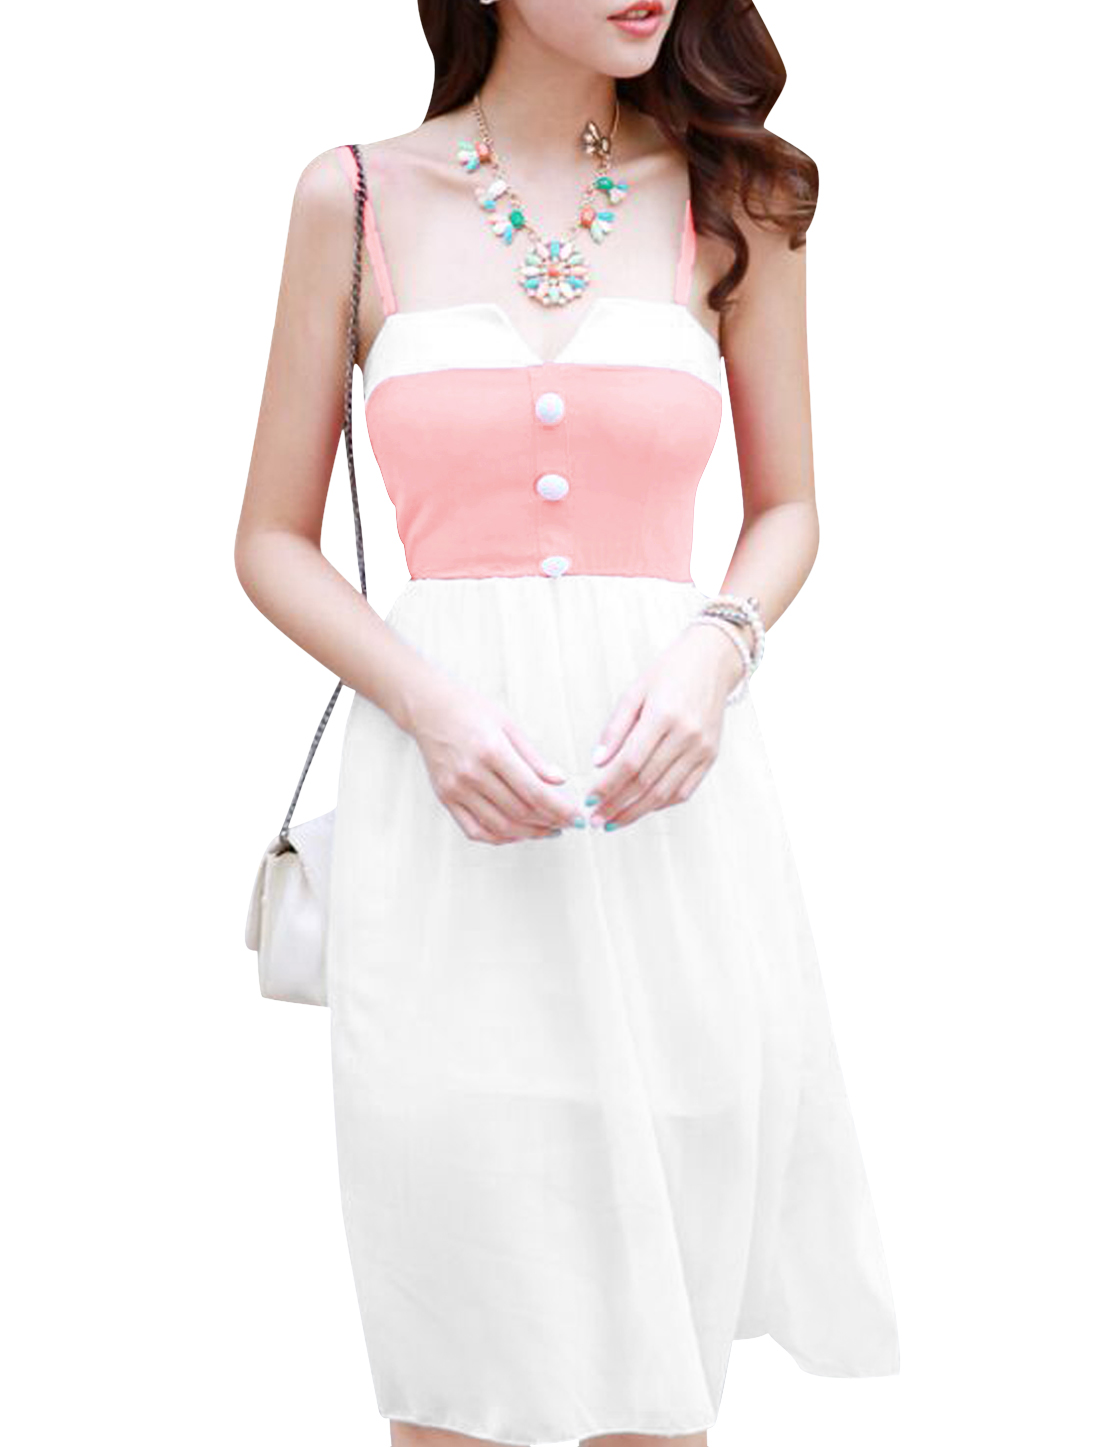 Lady Spaghetti Strap Buttons Decor Chiffon Overlay Dress White Pink XS